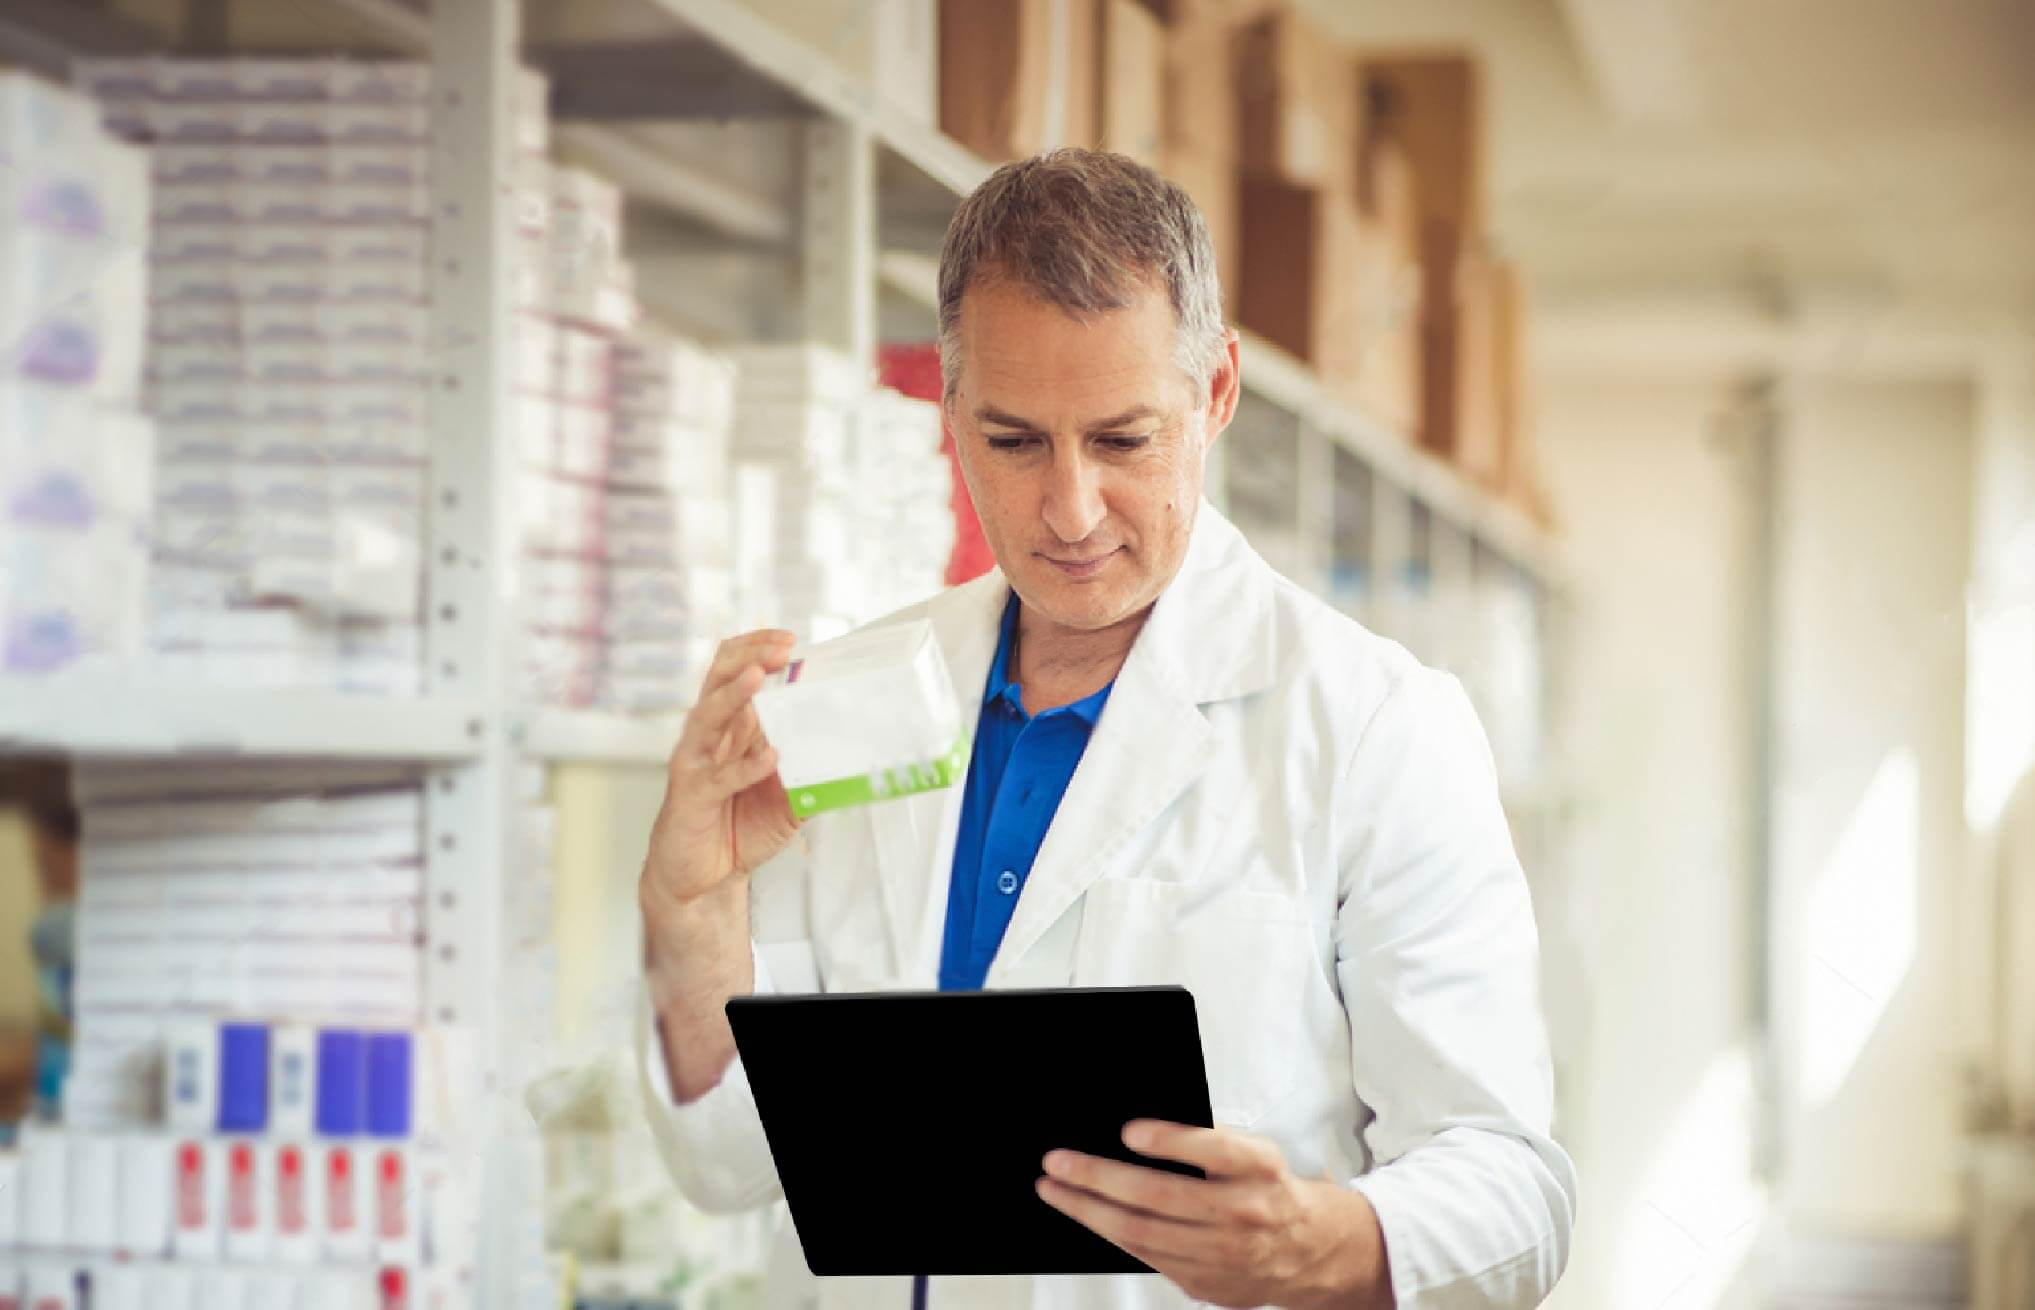 Inventory system asset tracking healthcare image